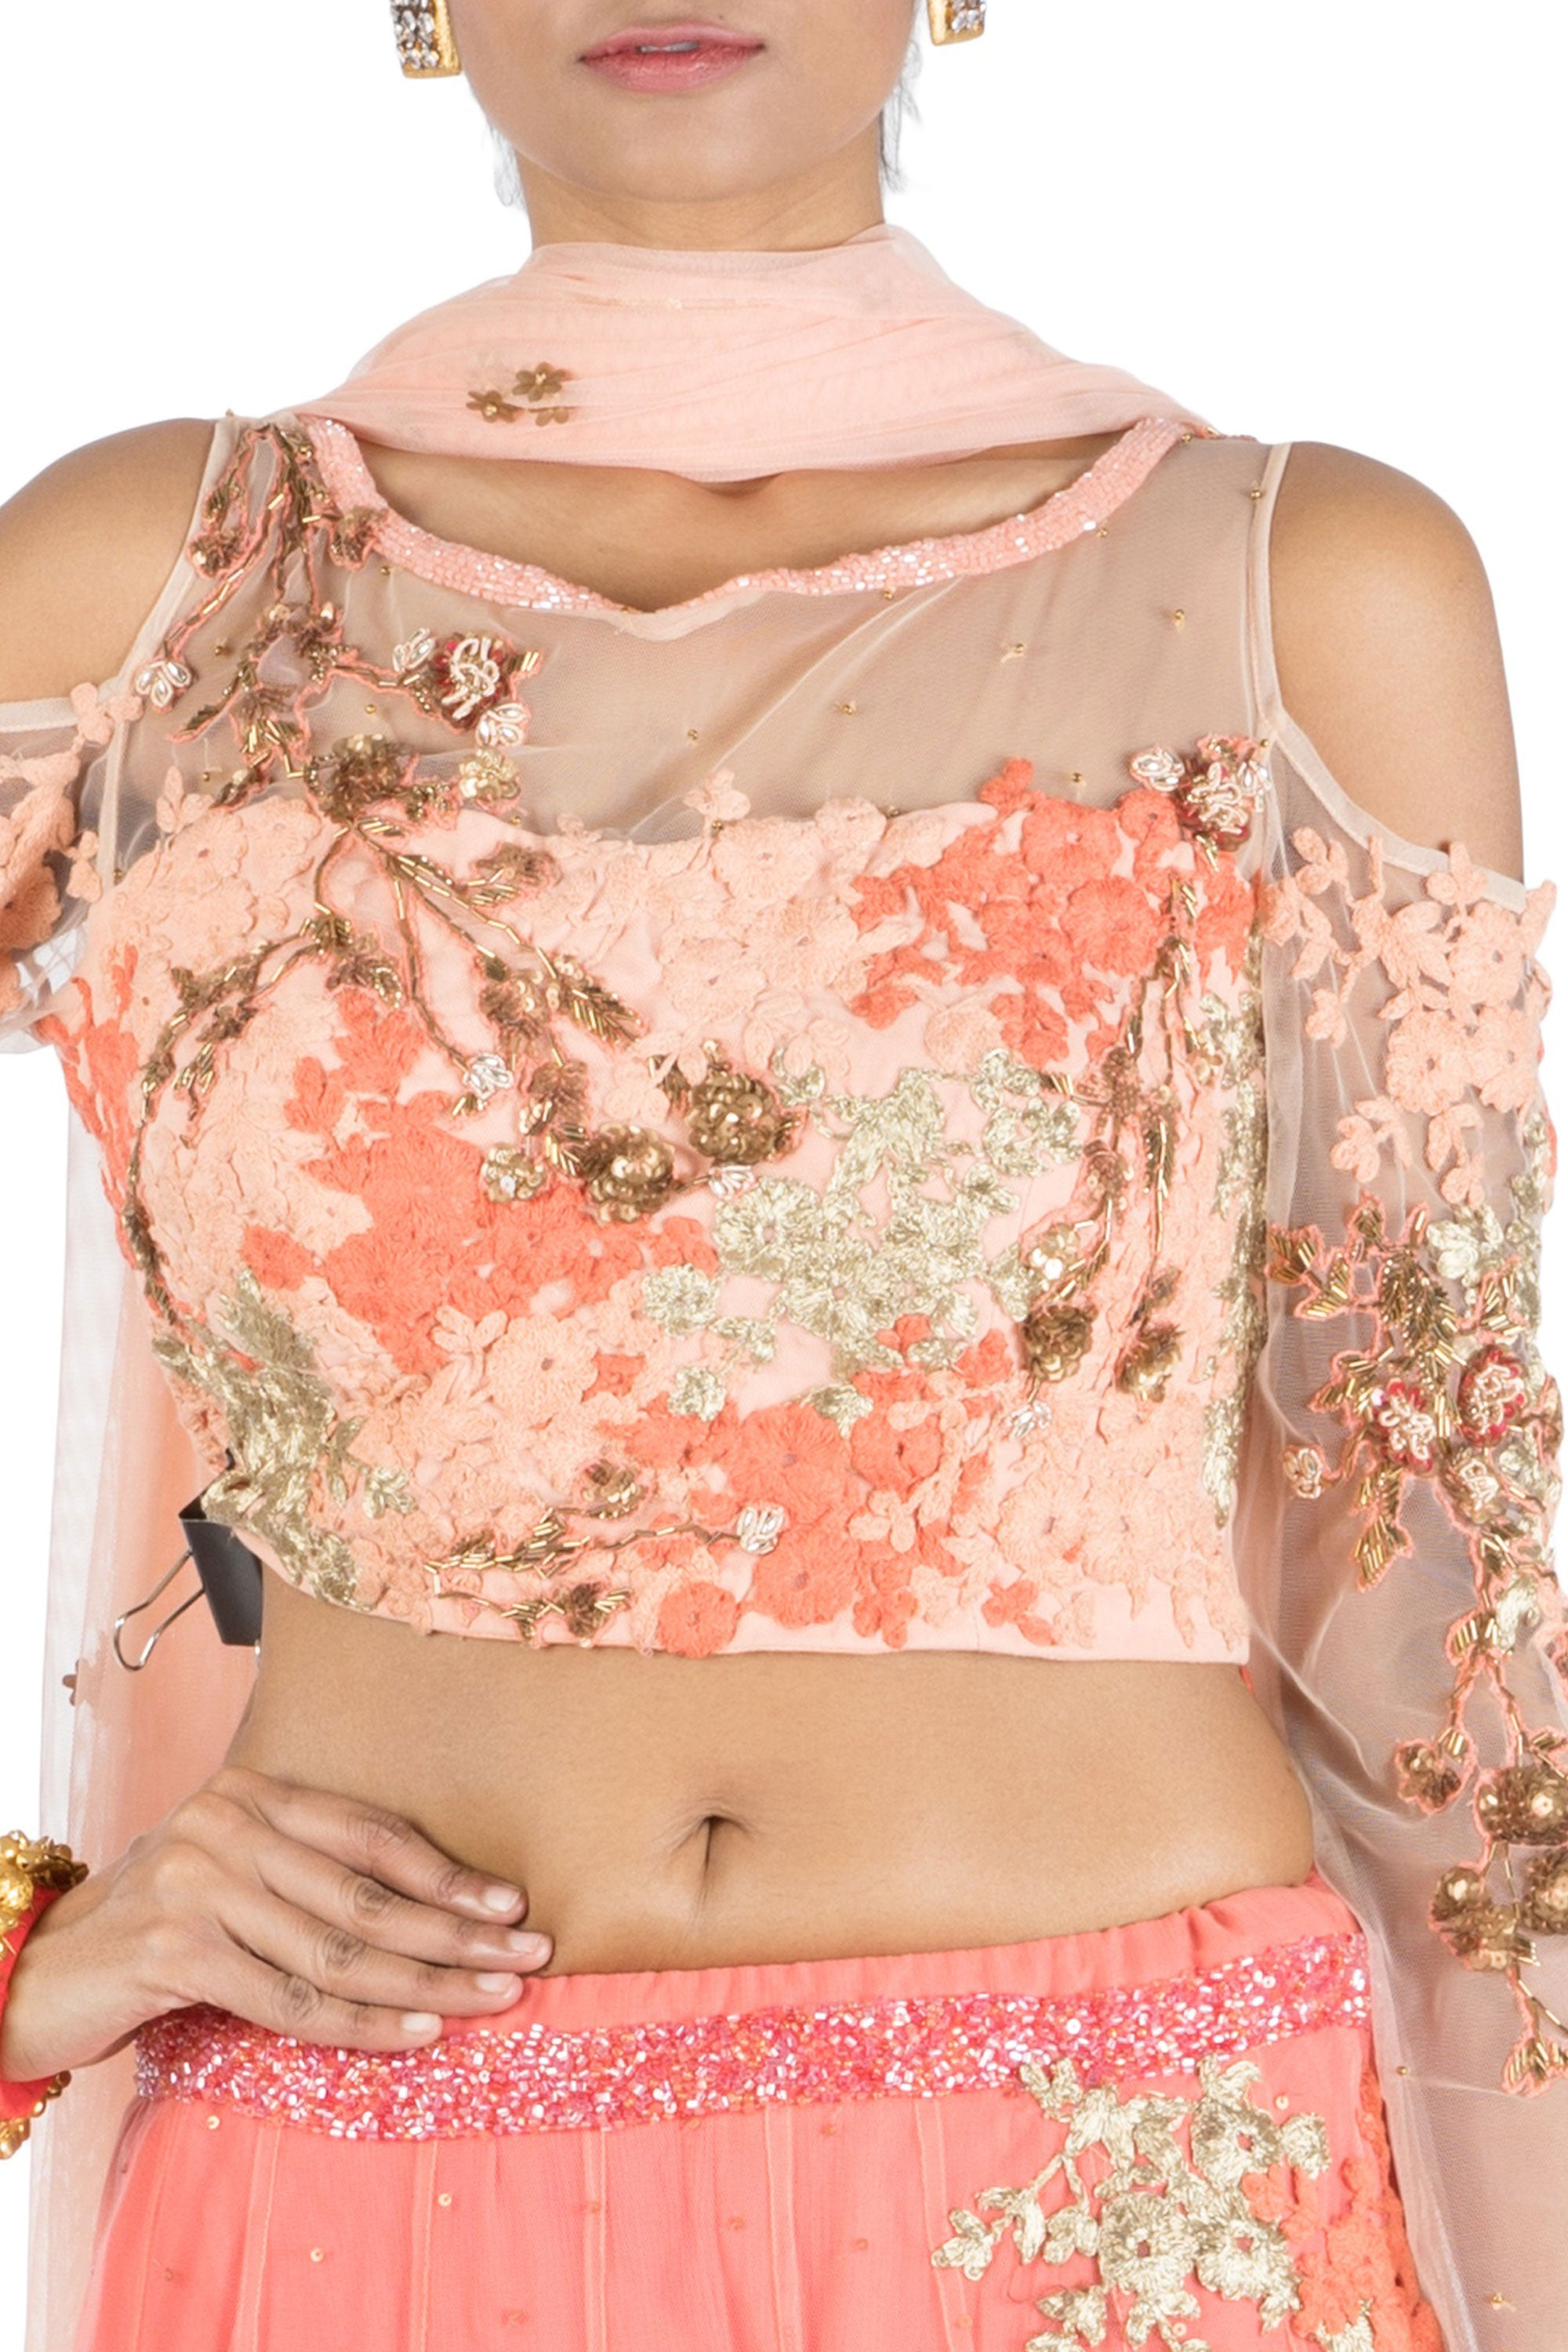 073d98e9c47382 ... Dark Peach Lehenga With Embroidered Cold Shoulder Blouse Closeup